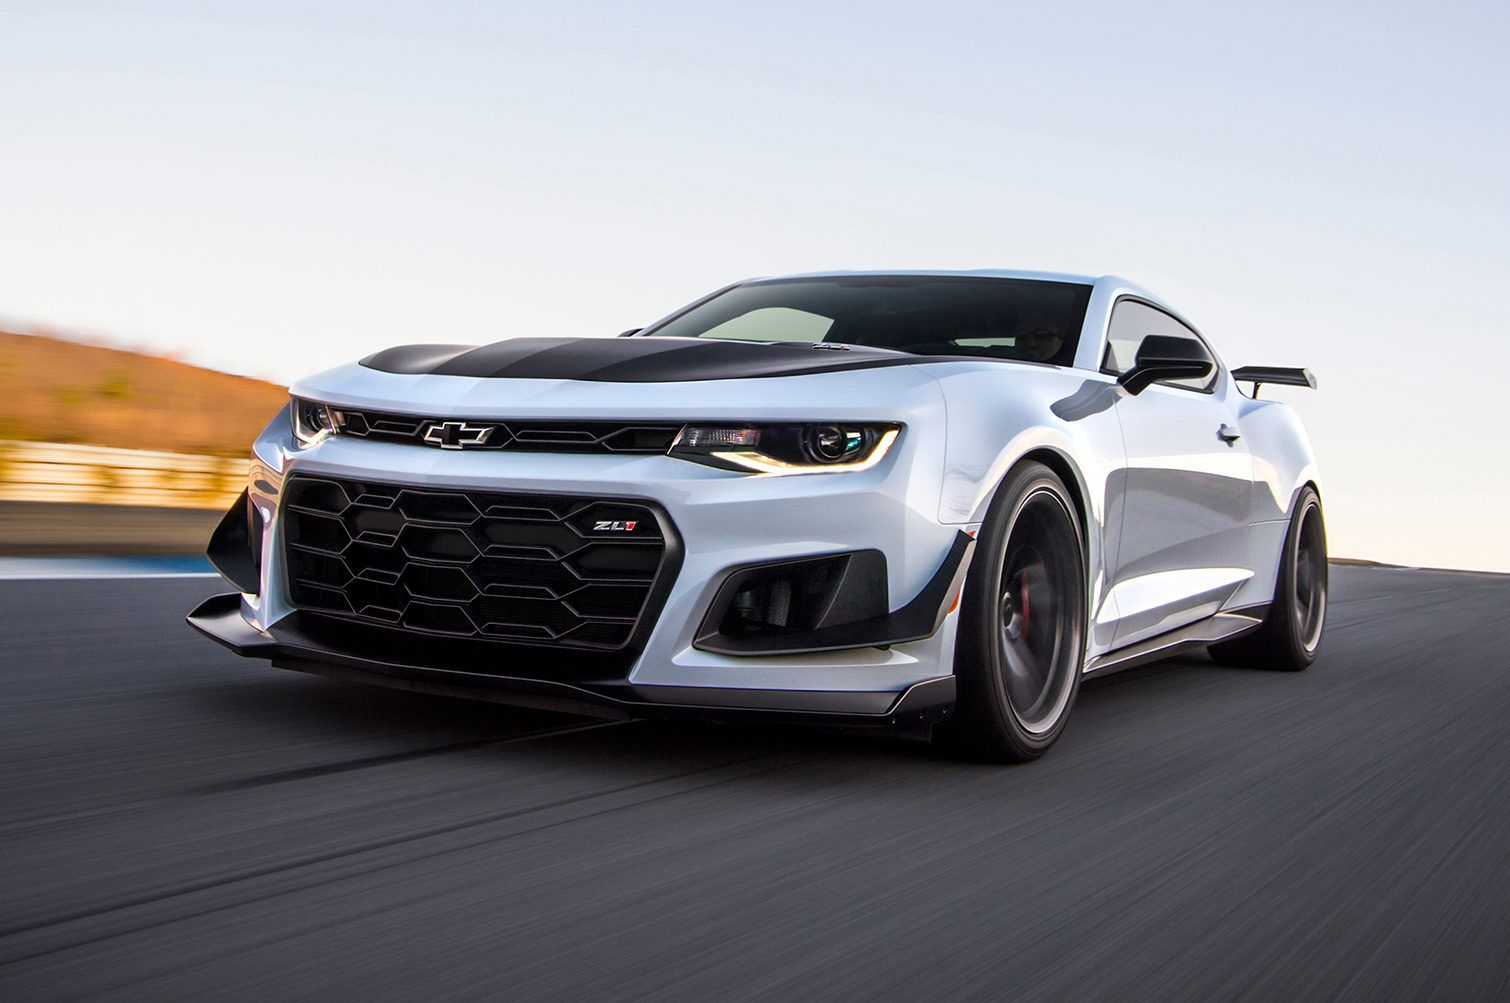 The camaro zl1 1le shows good results at n rburgring run new camaro zl1 1le by chevrolet